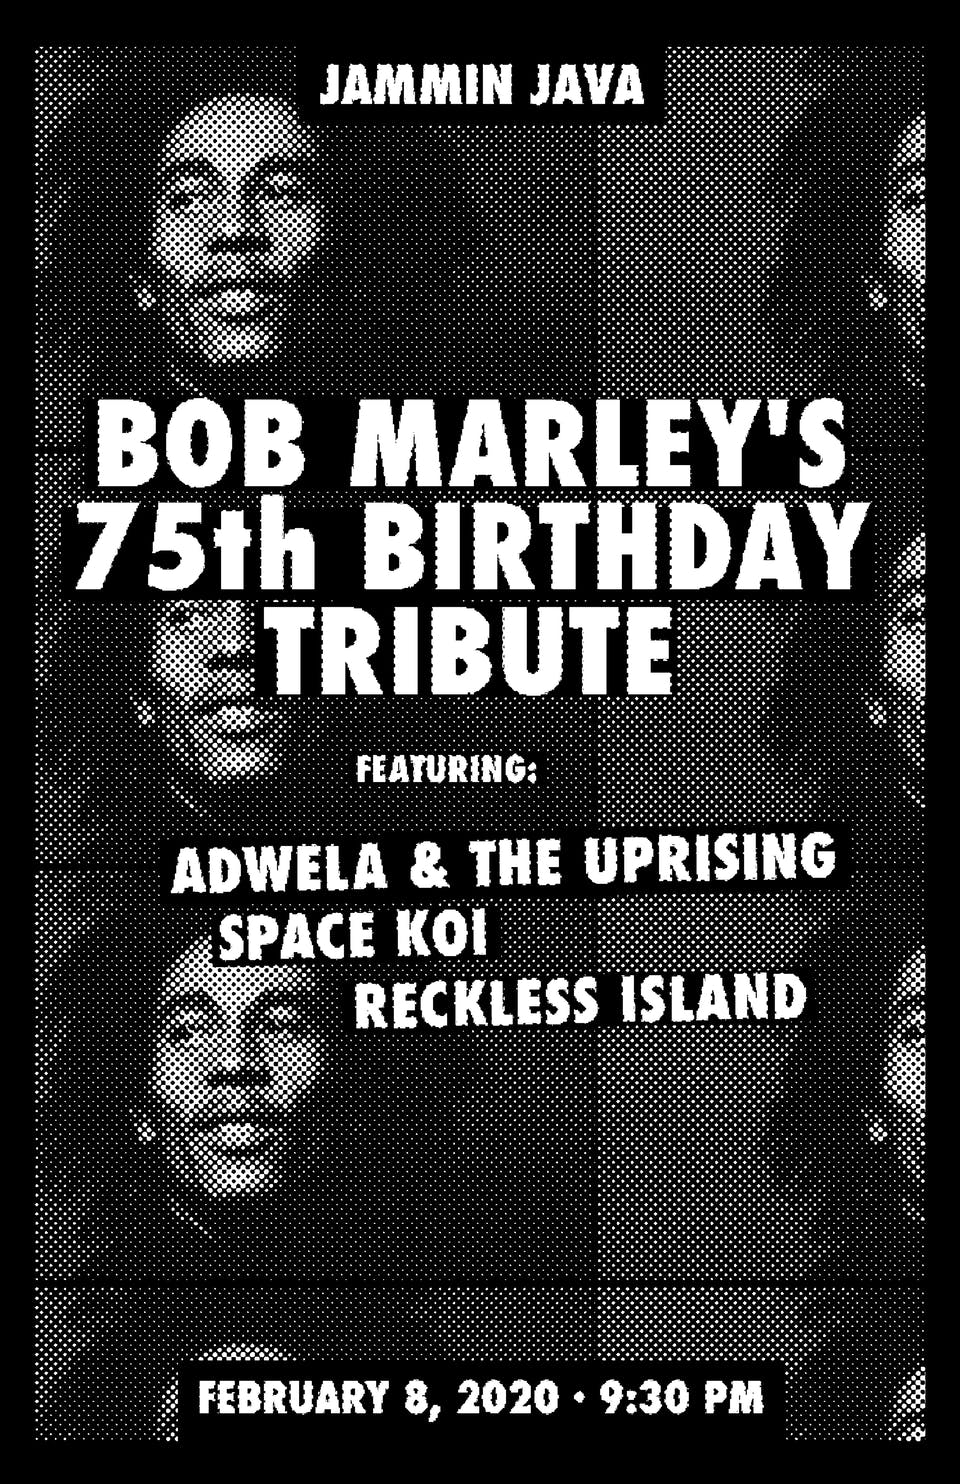 Bob Marley's 75th Birthday Tribute